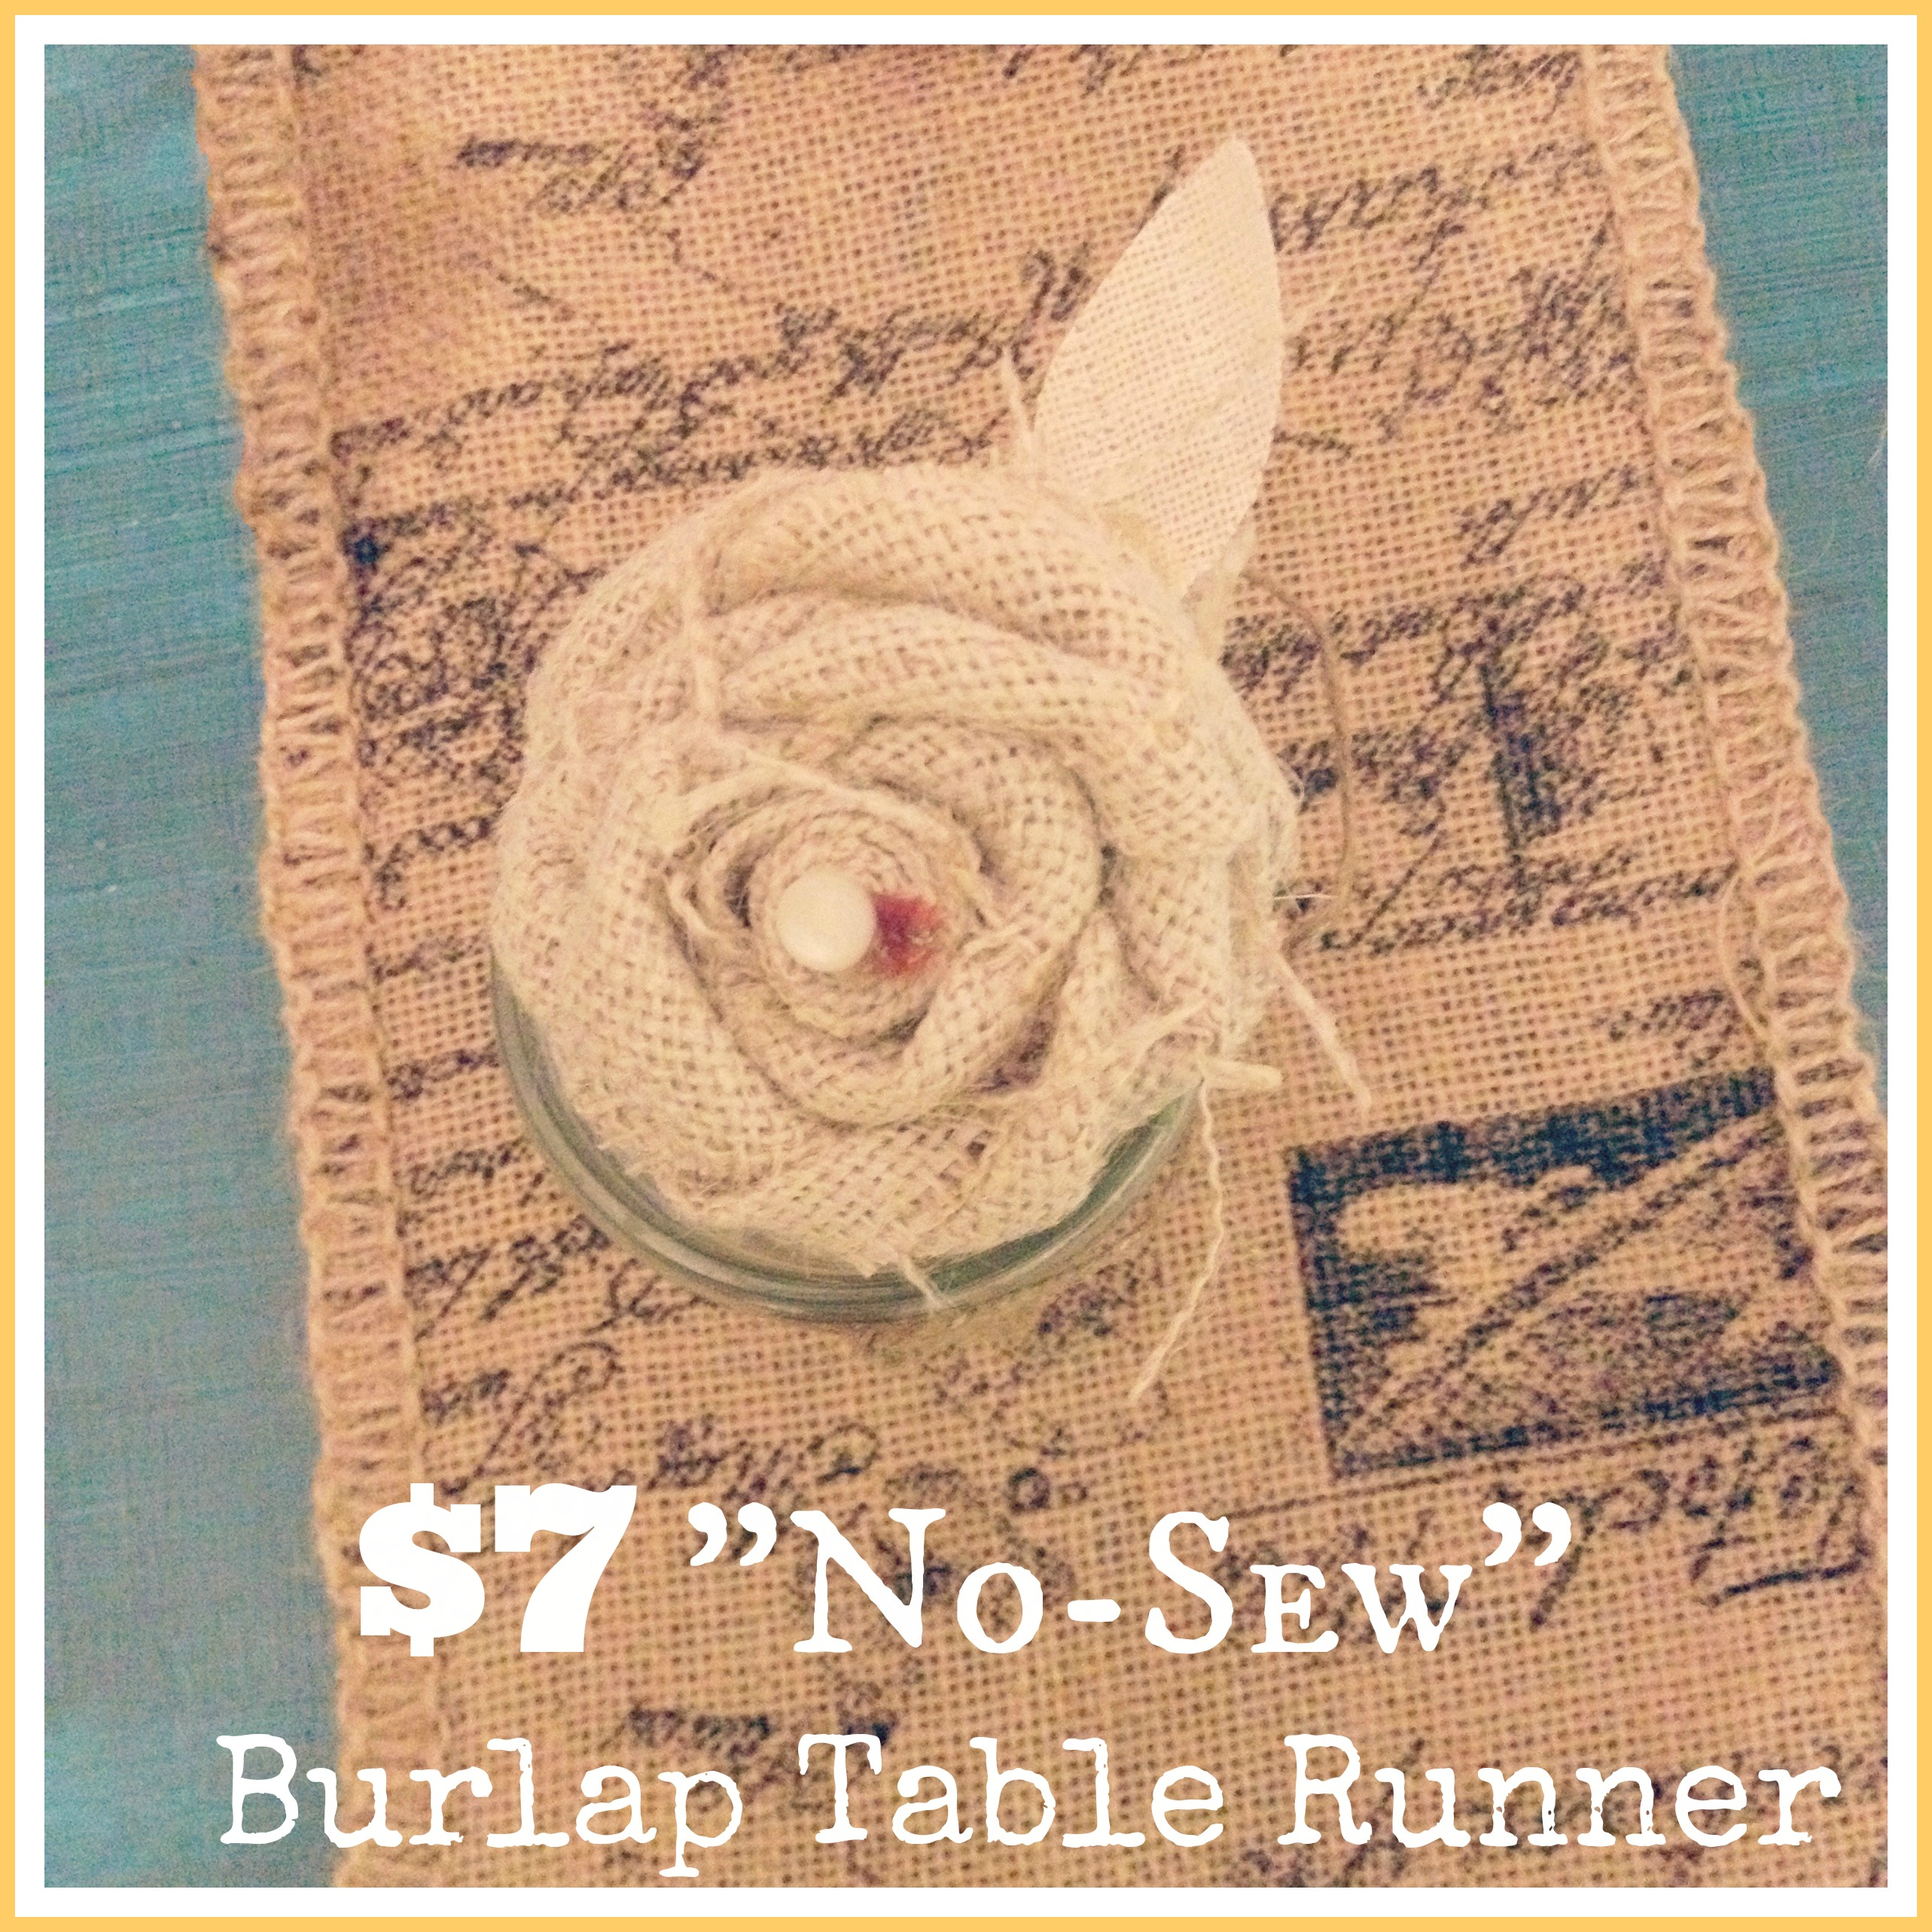 table lobby hobby Table runner  Runner